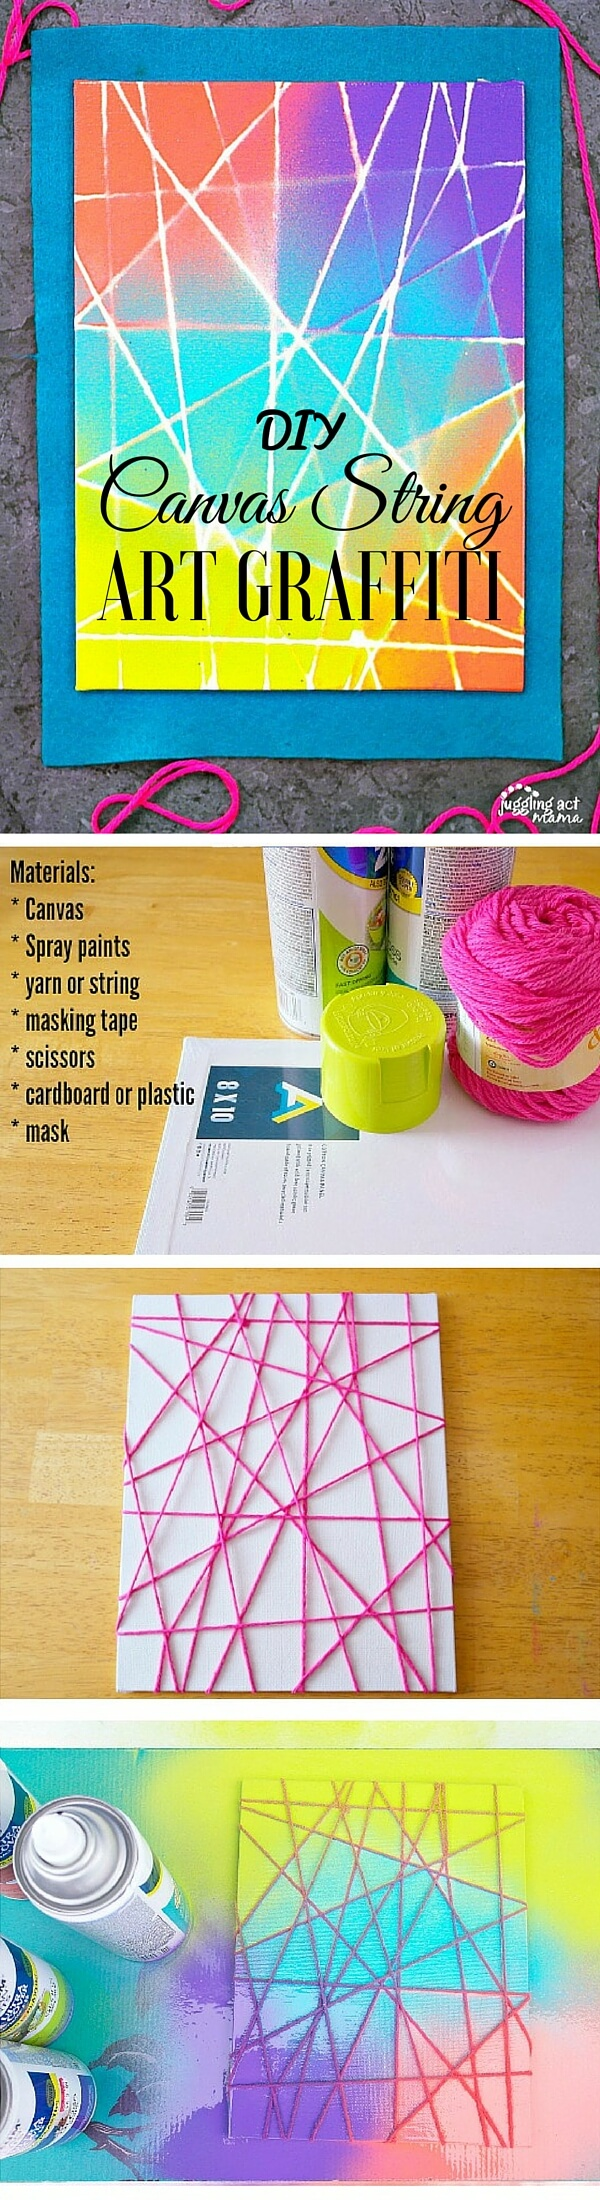 how to make home decorations